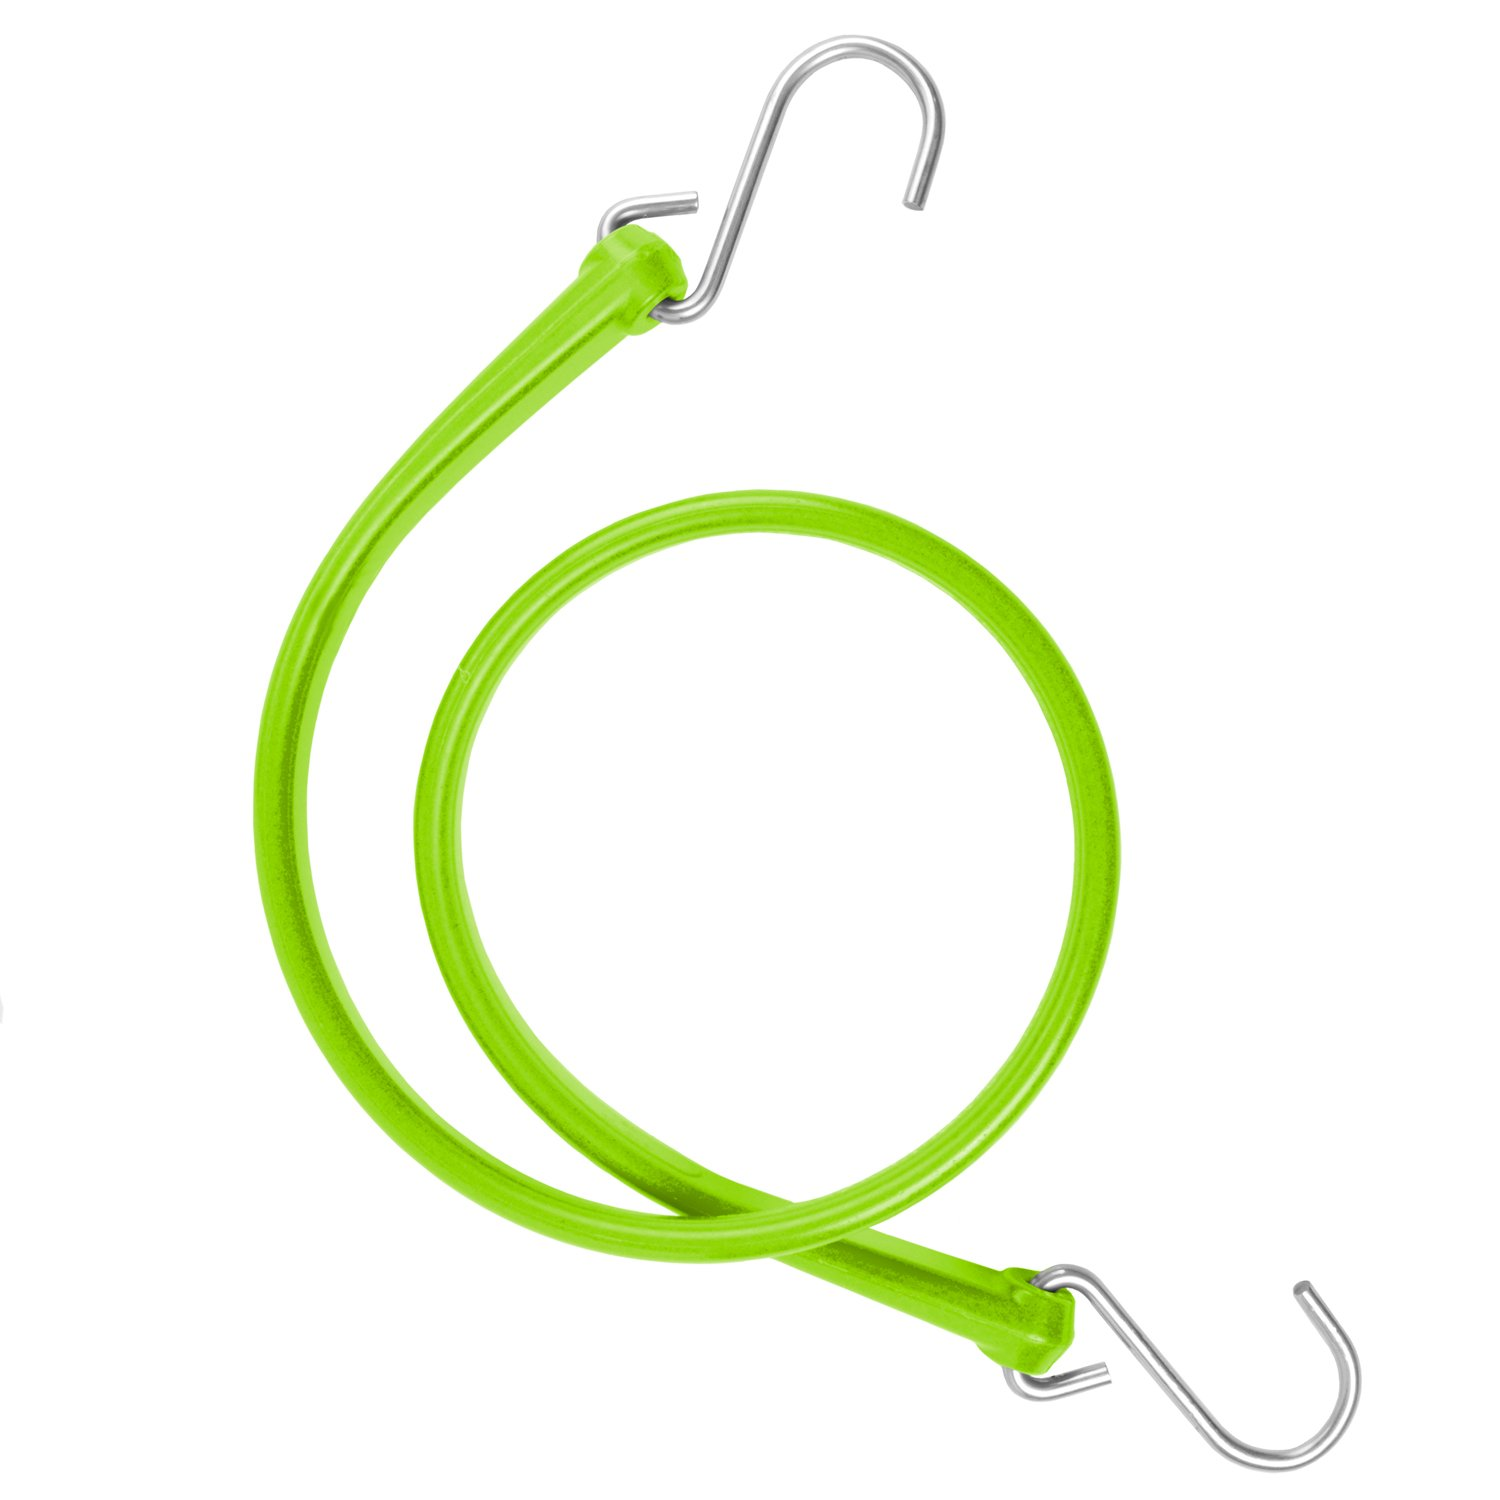 The Perfect Bungee by BihlerFlex B36G Heavy Duty Strap with Galvanized Hook, 36'', Safety Green